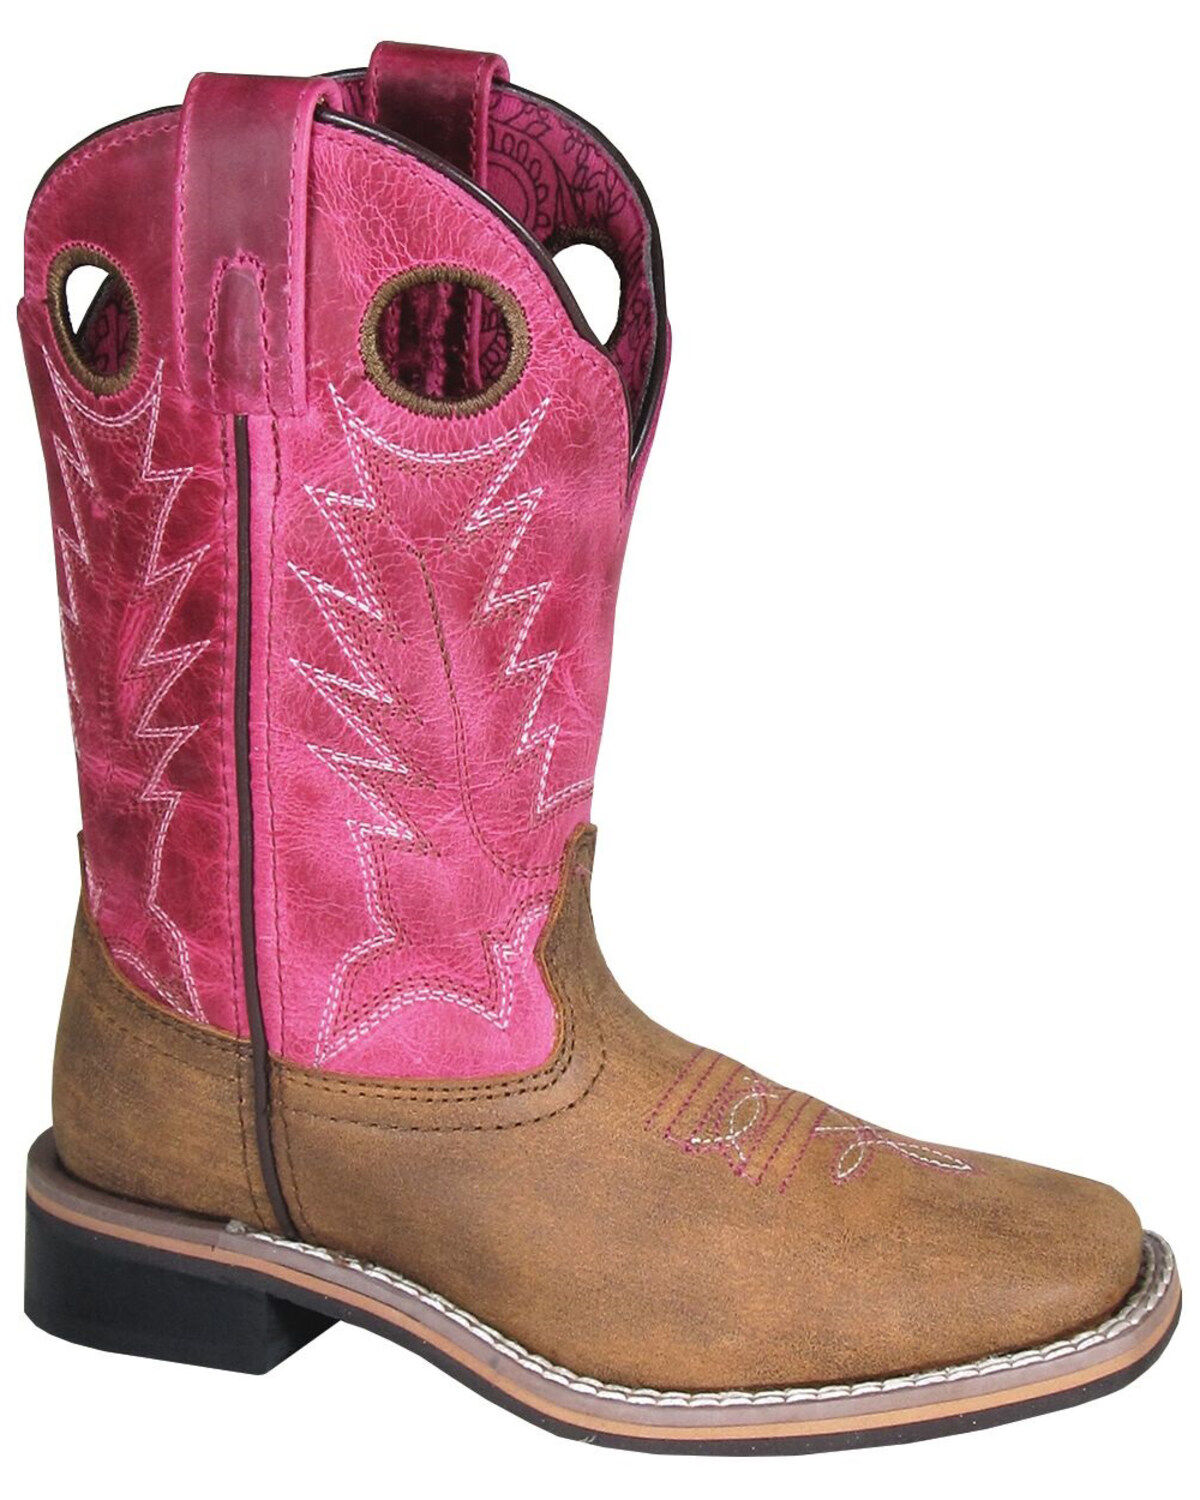 8159 Old West Girls Overlay Western Boot Pointed Toe